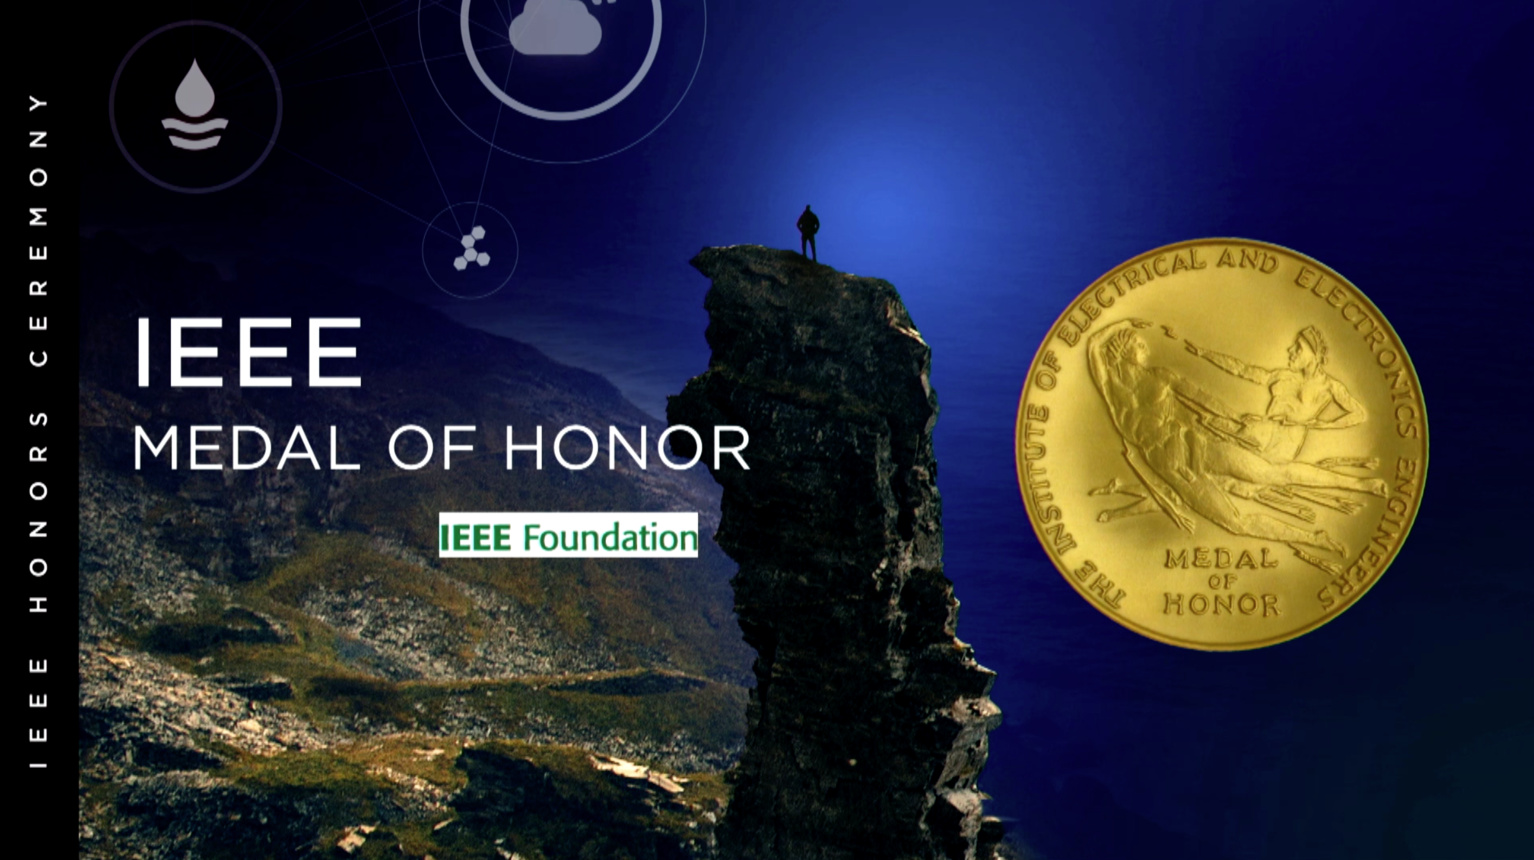 IEEE Medal of Honor - Bradford W. Parkinson - 2018 IEEE Honors Ceremony